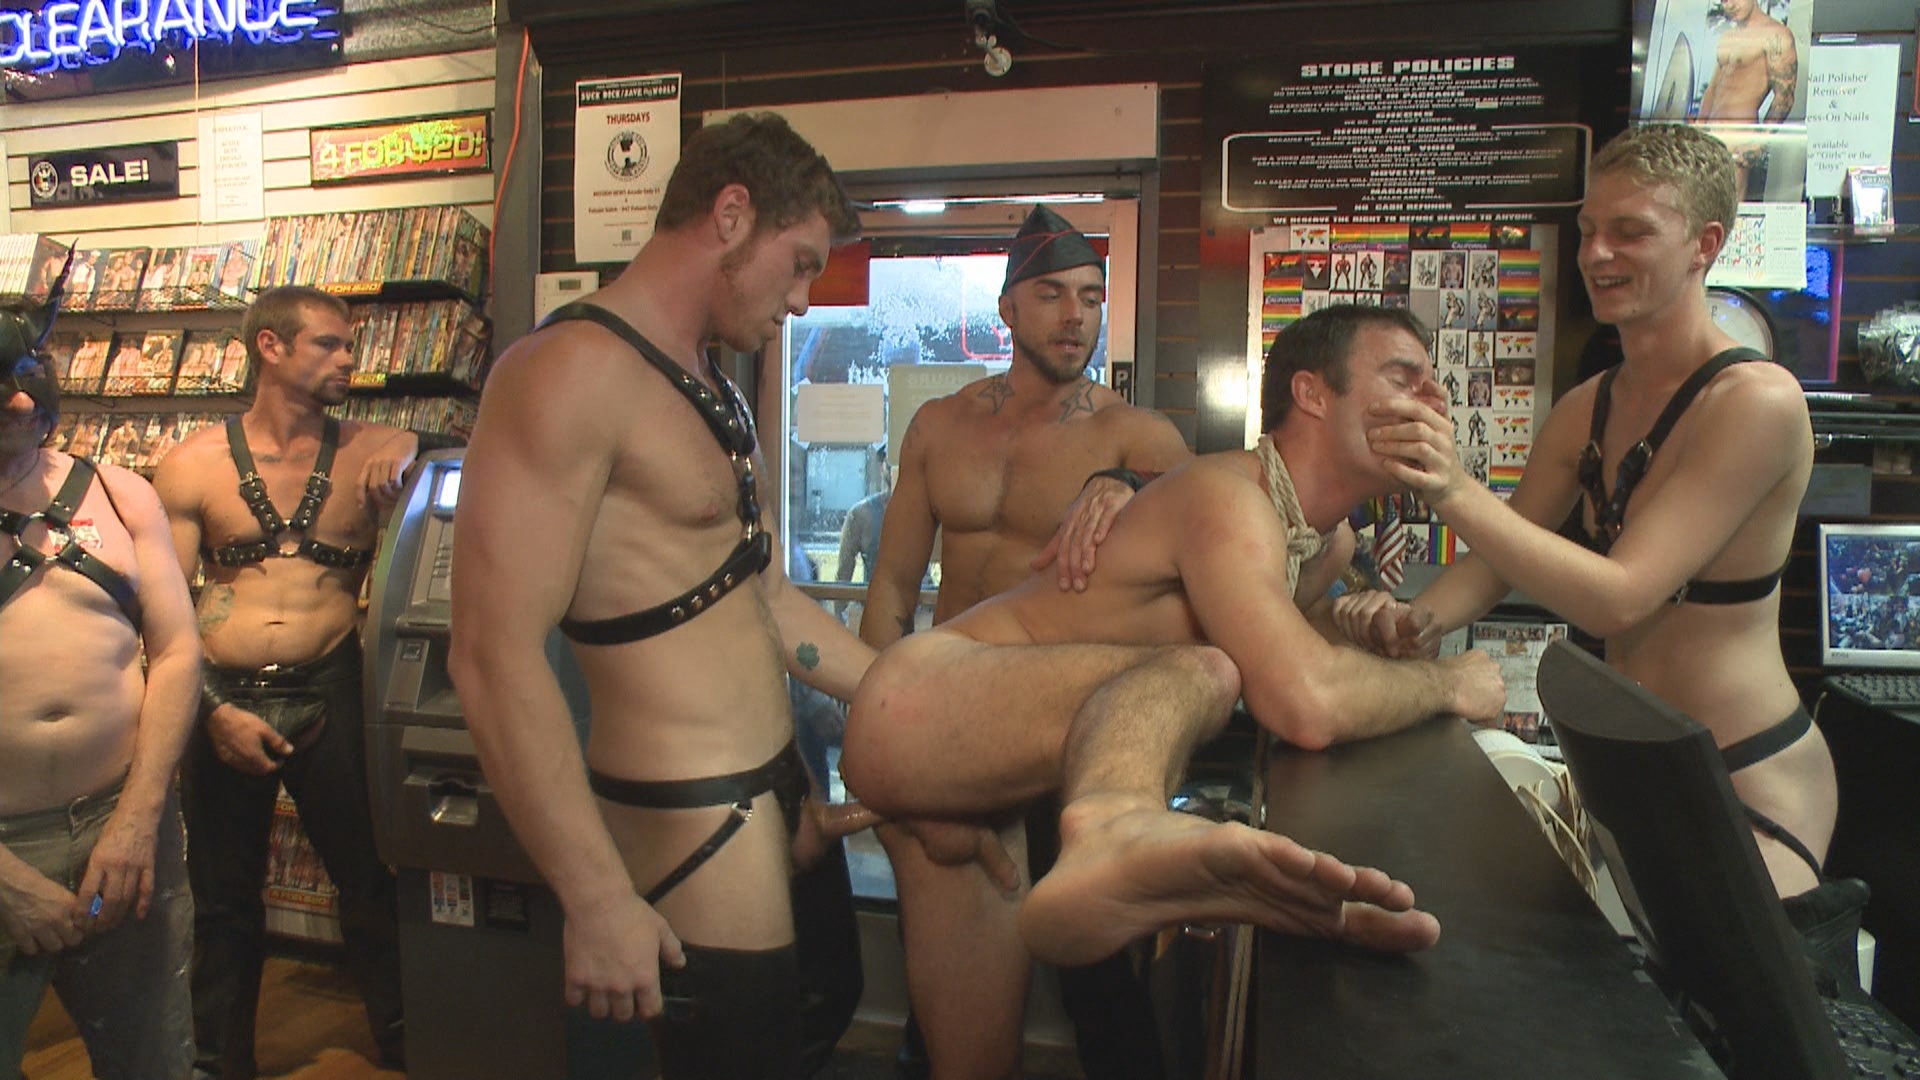 at Porn fair tsars folsom street